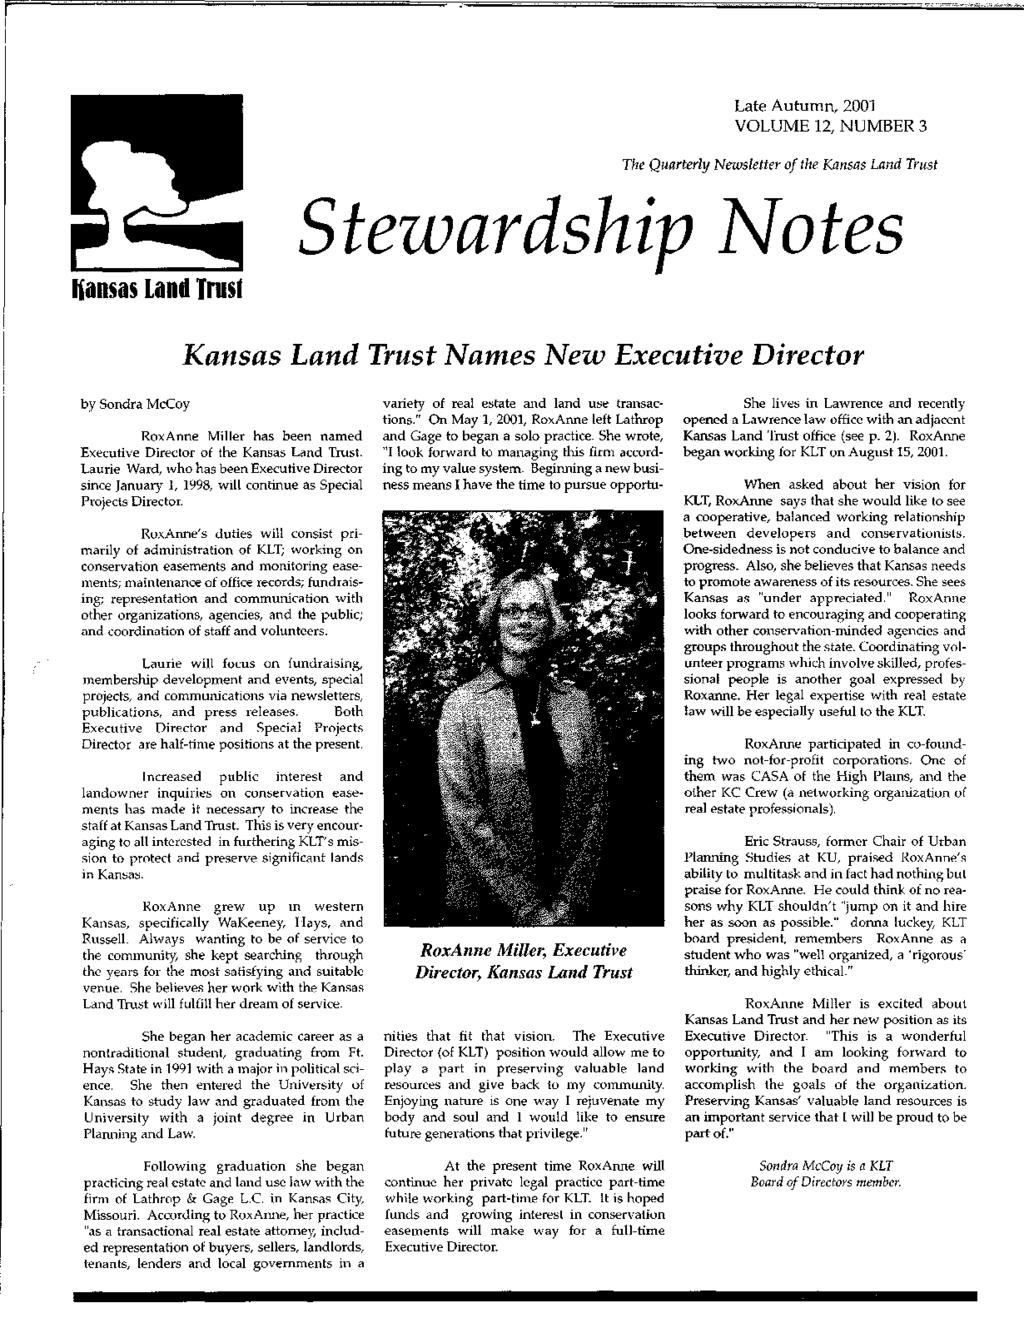 r= Late Autumn, 2001 VOLUME 12, NUMBER 3 The Quarterly Newsletter of the Kansas Land Trust Hansas land Trust Steuoardship ~otes Kansas Land Trust Names New Executive Director by Sondra McCoy RoxAnne